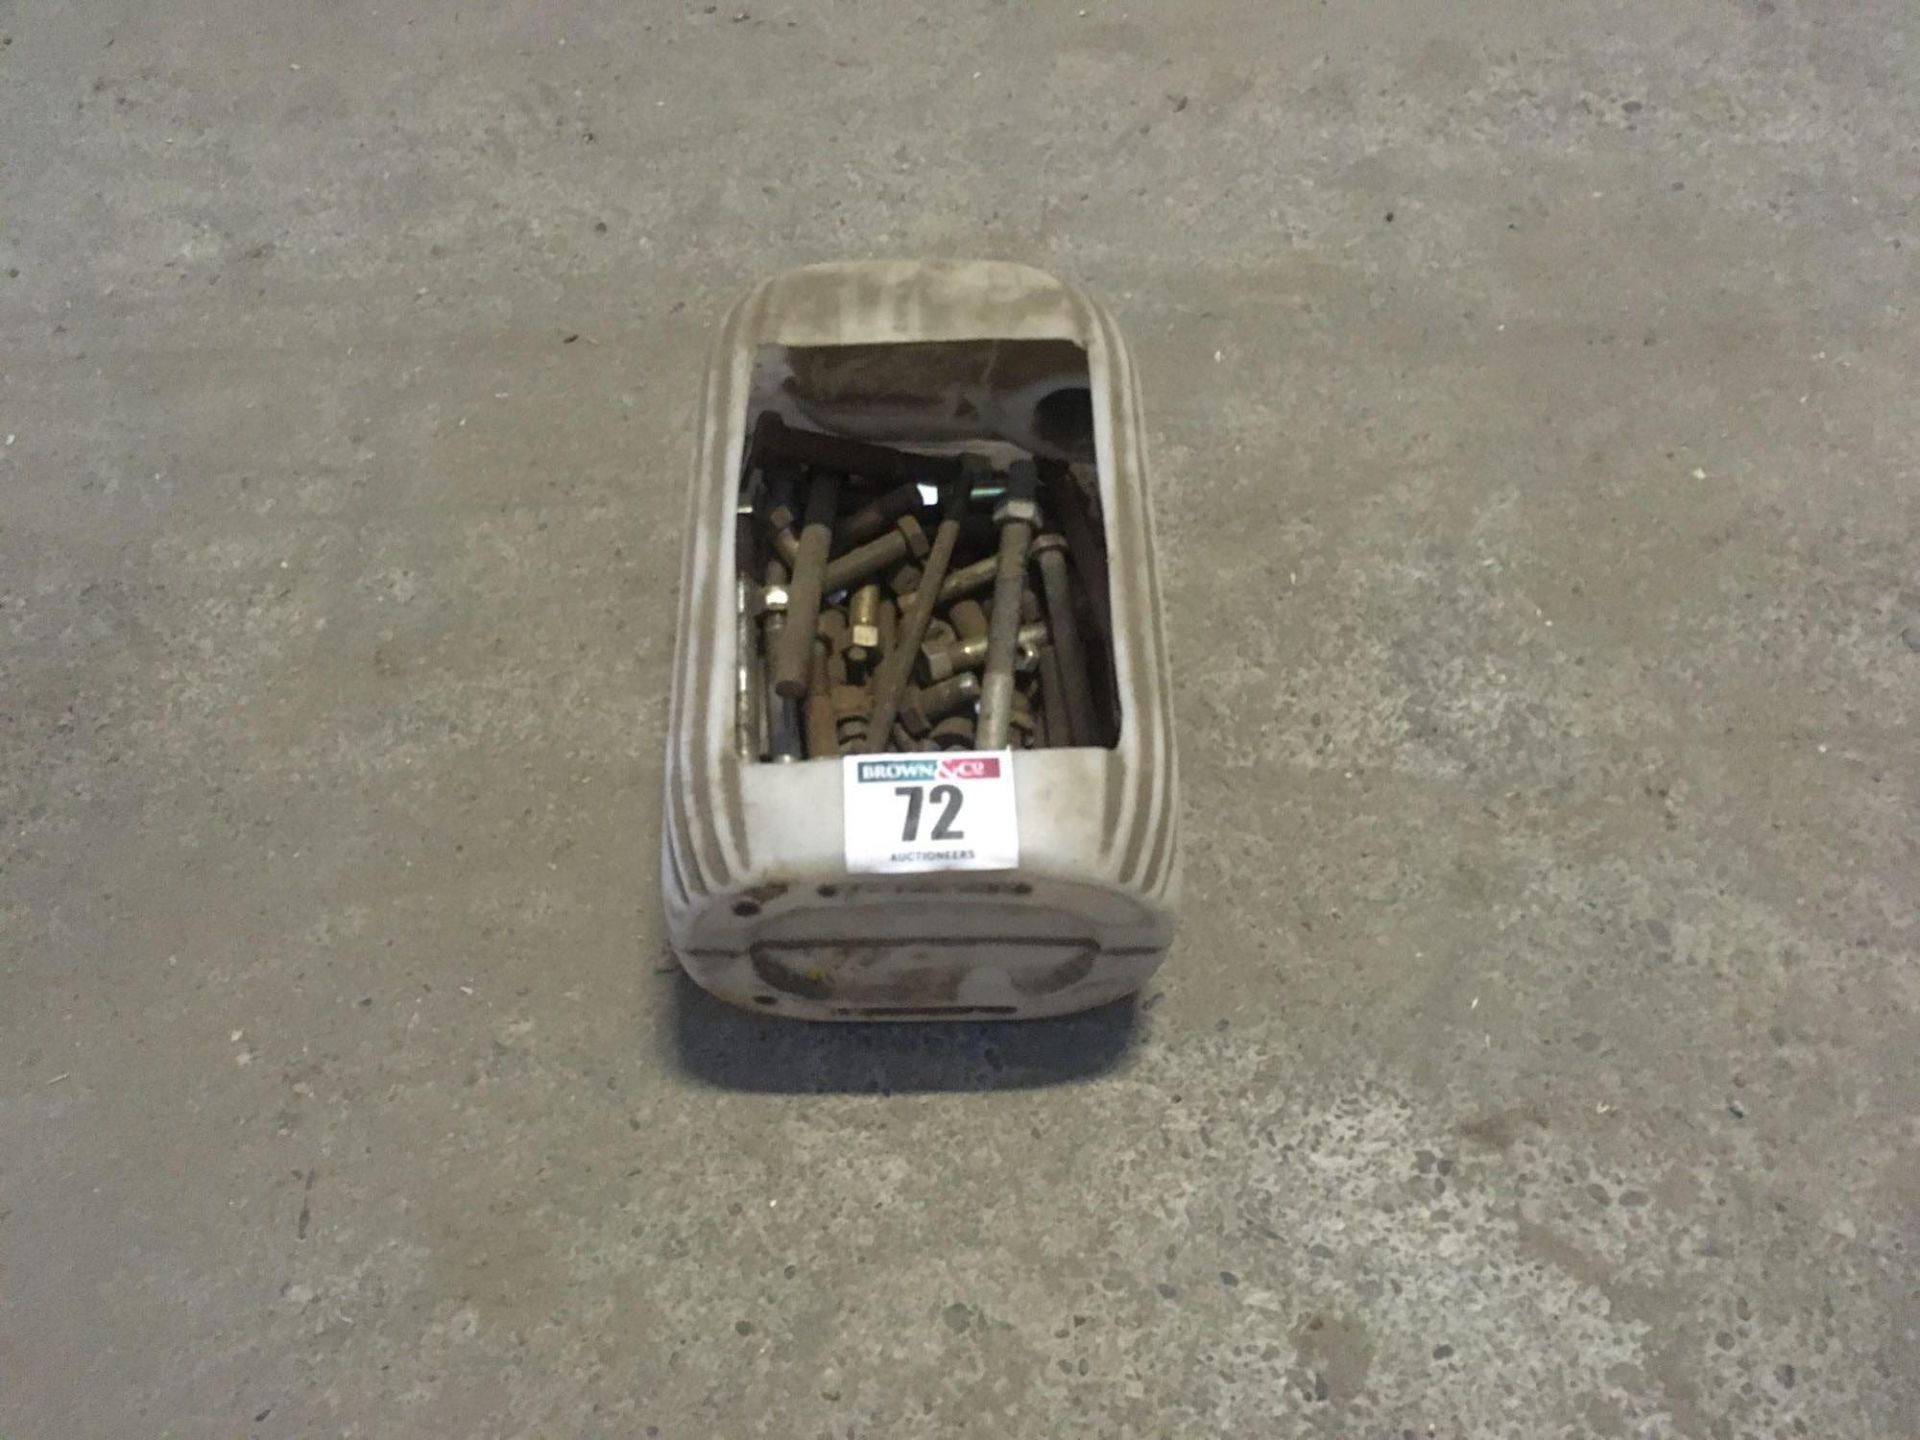 Assorted nuts and bolts